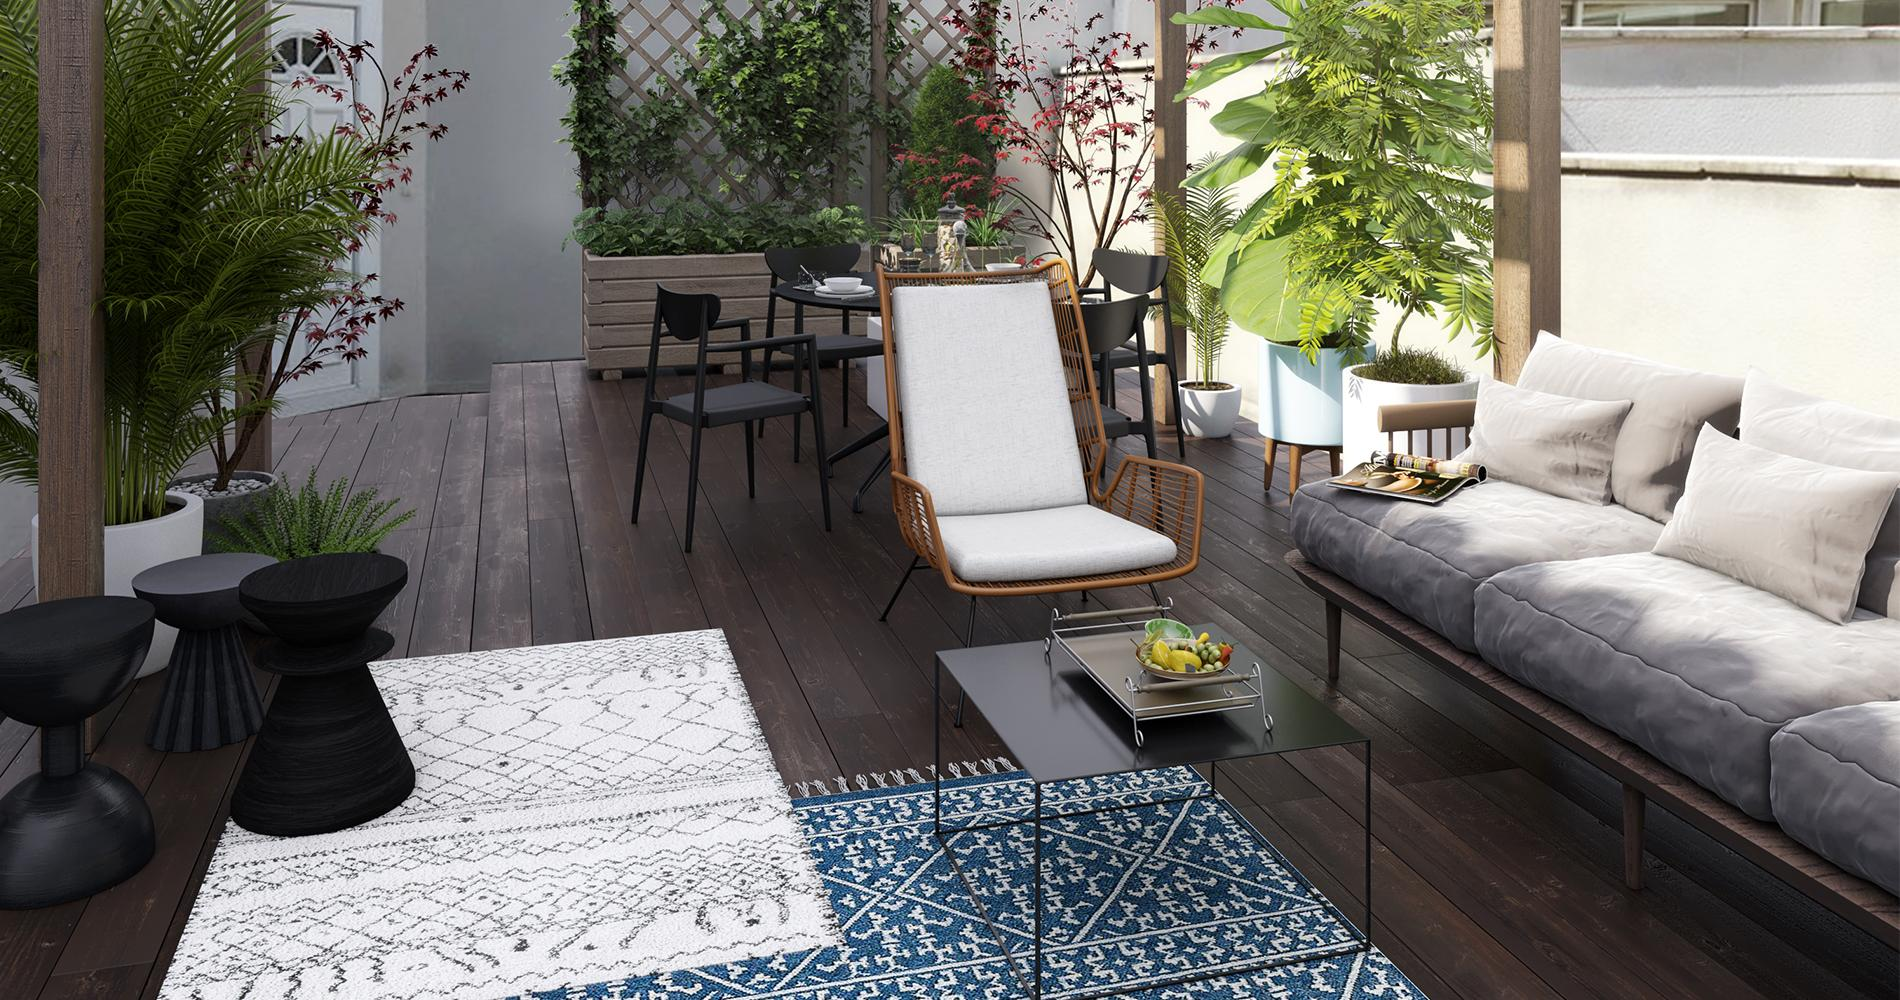 comment d corer sa terrasse madame figaro. Black Bedroom Furniture Sets. Home Design Ideas